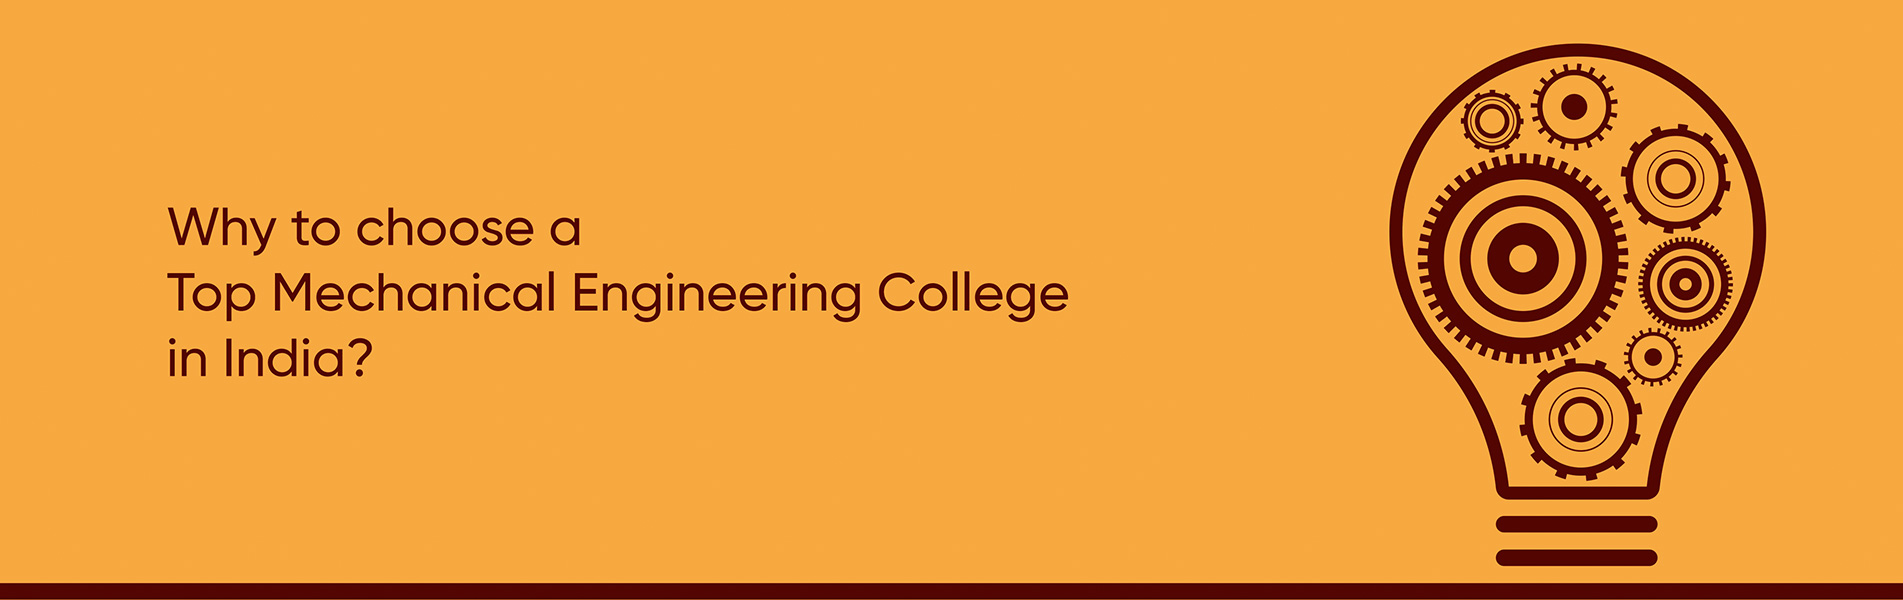 Top Mechanical Engineering College in India